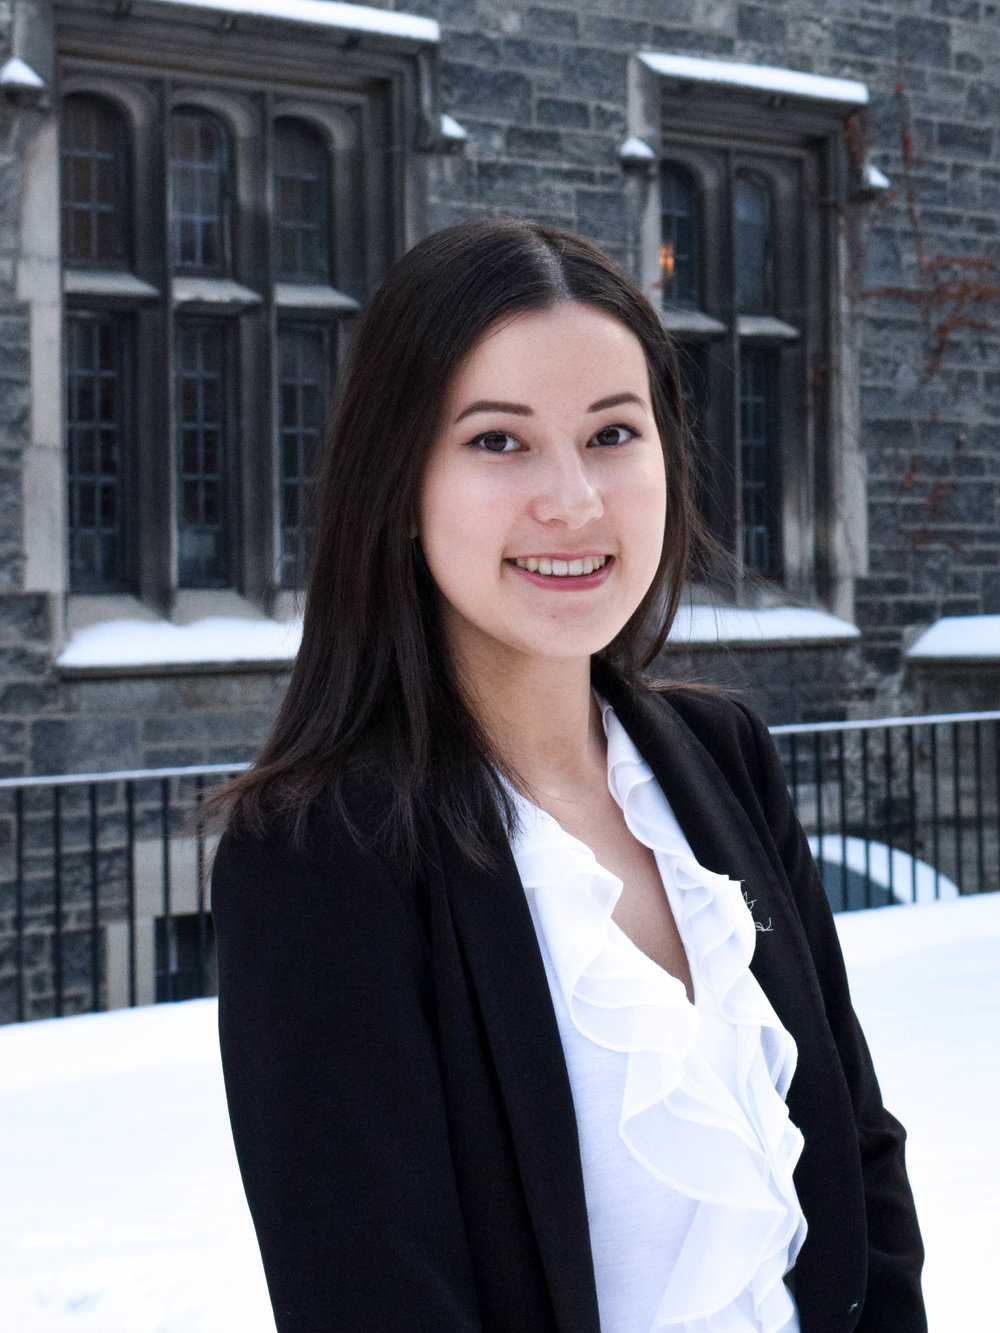 Emily Chu is an enthusiastic second-year student studying Political Science, International Relations, and American Studies. After previously serving as a First-Year Representative, she now acts as the Associate Vice-President for the APSS. Emily is deeply interested in the fields covered by politics, particularly Canadian-American Relations, Human Rights, and Development. Furthermore, she focuses on the unique relationship between human rights violations and international law, and responses to said violations by Canada and the US. Along with the APSS, she has been involved in the Pre-Law Society, the G20 Research Group, UTMUN, and the UofT Women in House program. She is excited to continue the APSS' engagement with the UofT community, and hopes to bring the organization to an even higher level this year.